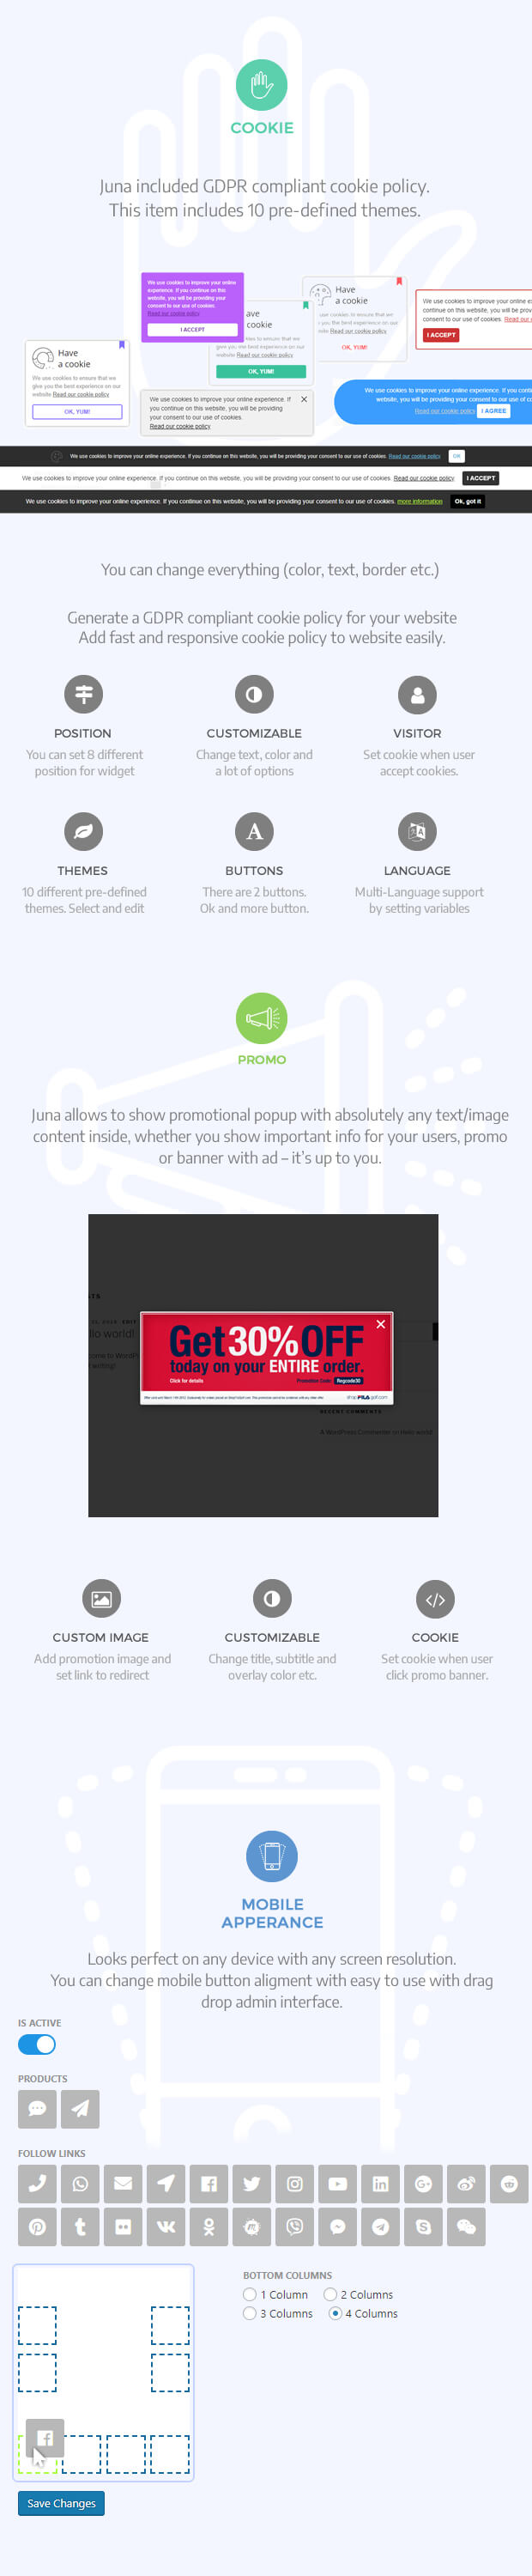 Juna Ultimate All-in-One, Feedback, Follow, Contact Form, Cookie, Promo Banner  Wordpress Kit - 2